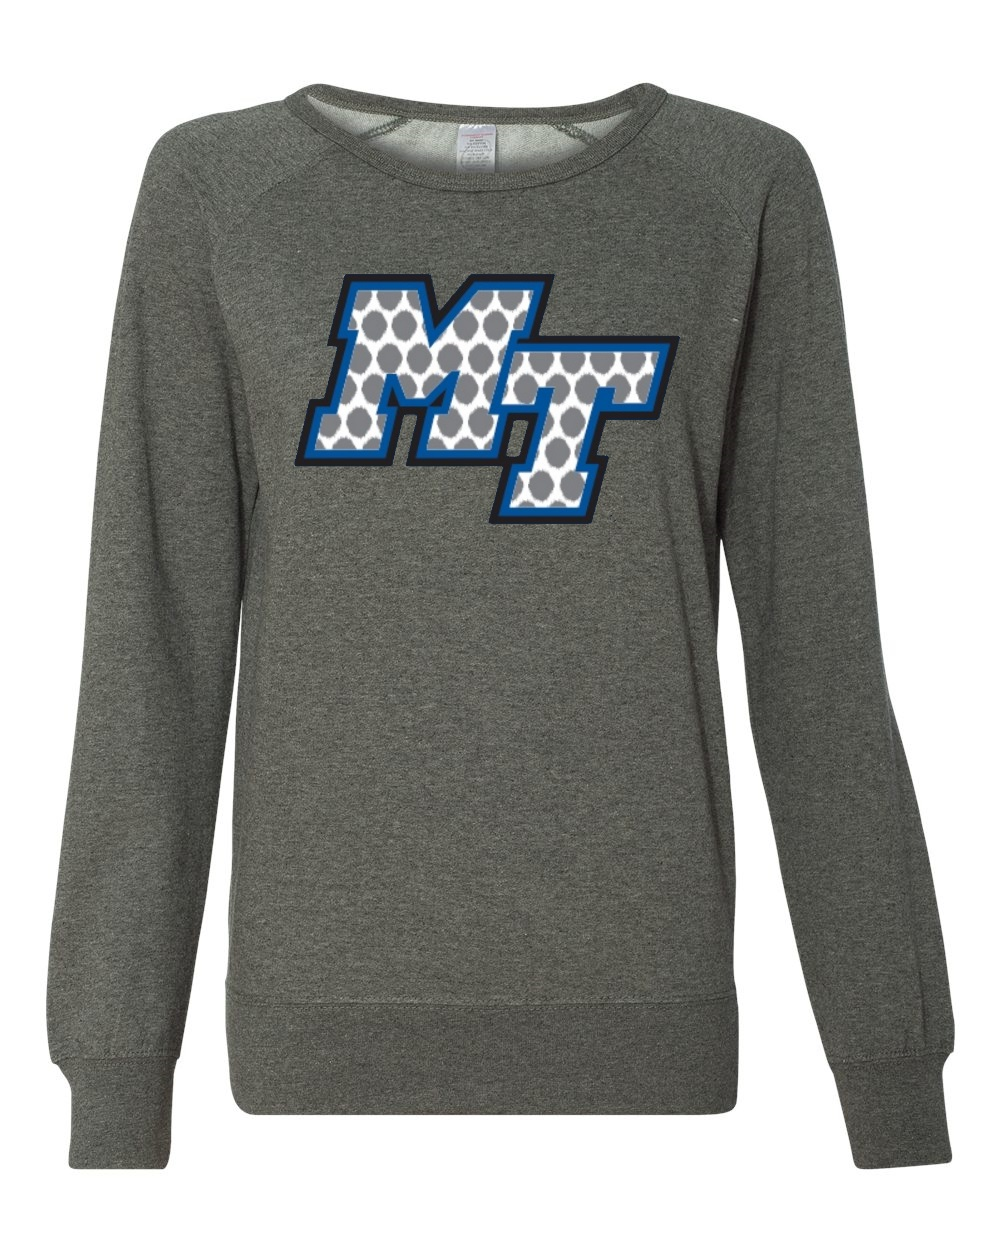 MT Logo Polka Dot Print Juniors Crewneck Sweatshirt